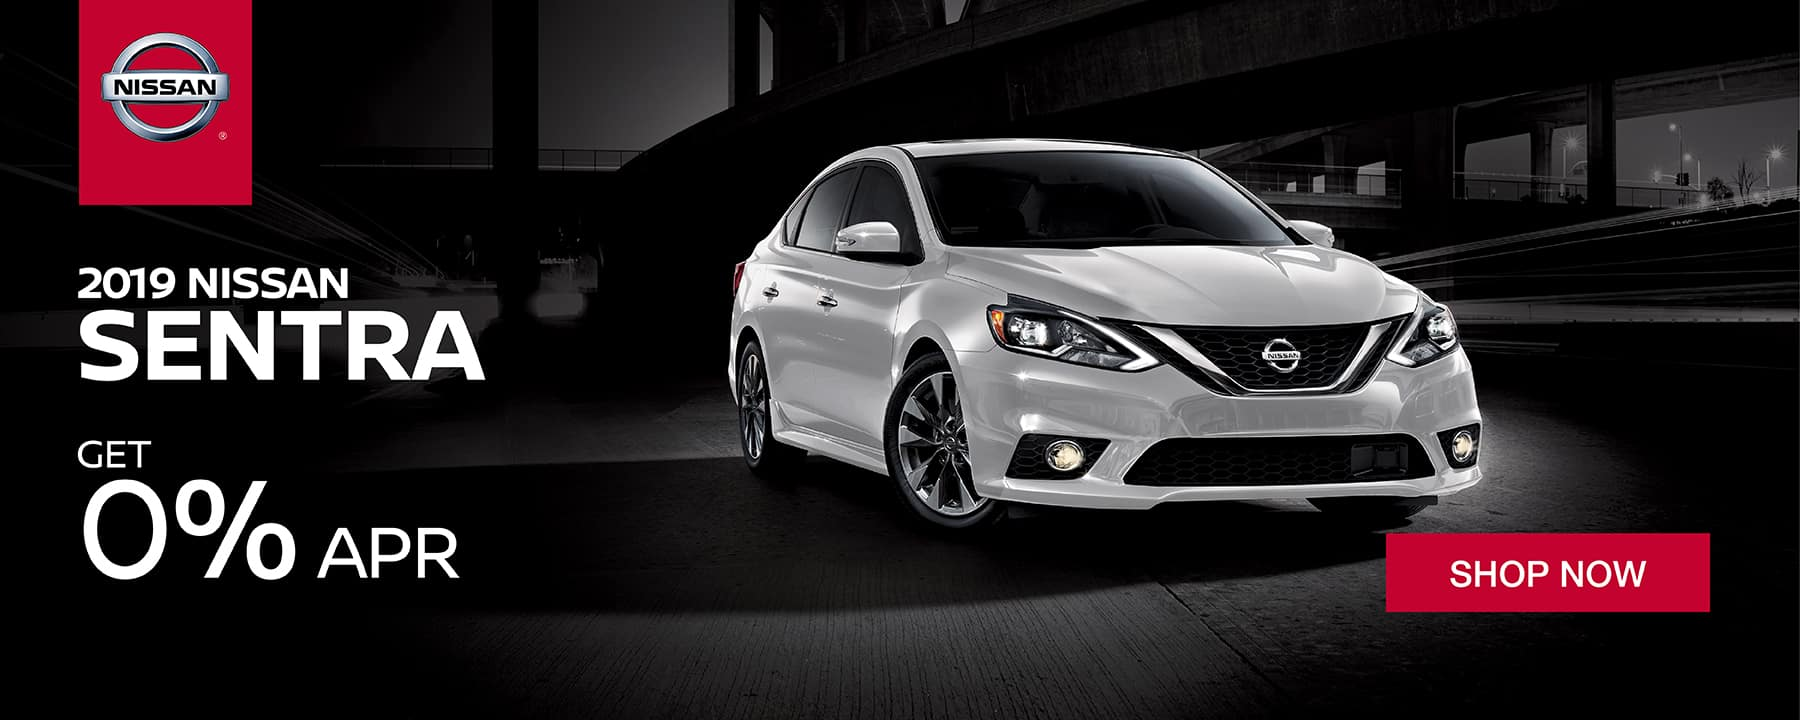 Shop the 2019 Nissan Sentra NOW at Berman Nissan of Chicago!